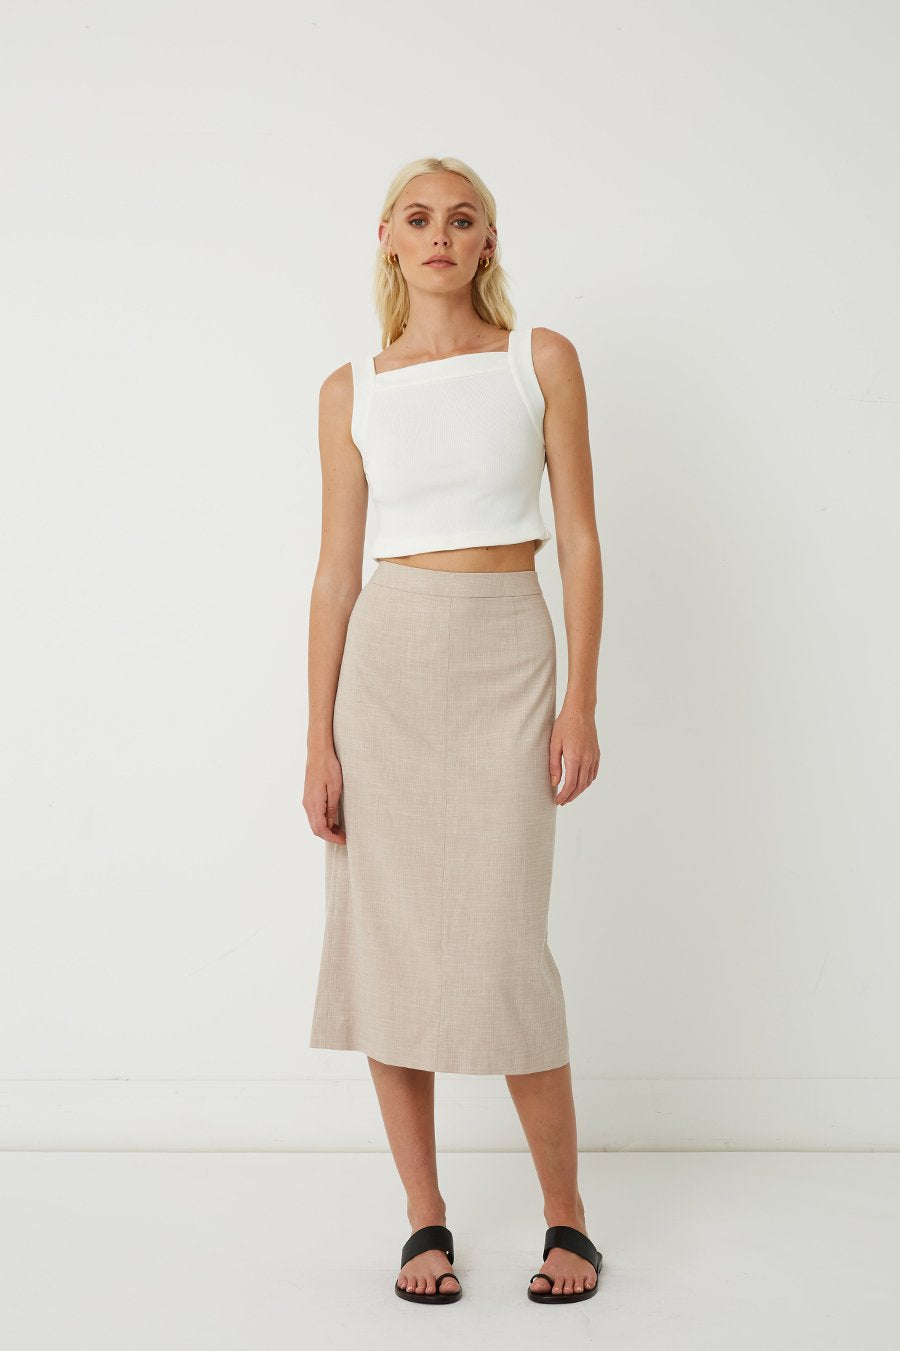 FRIEND OF AUDREY | Iris Square Neck Crop Top